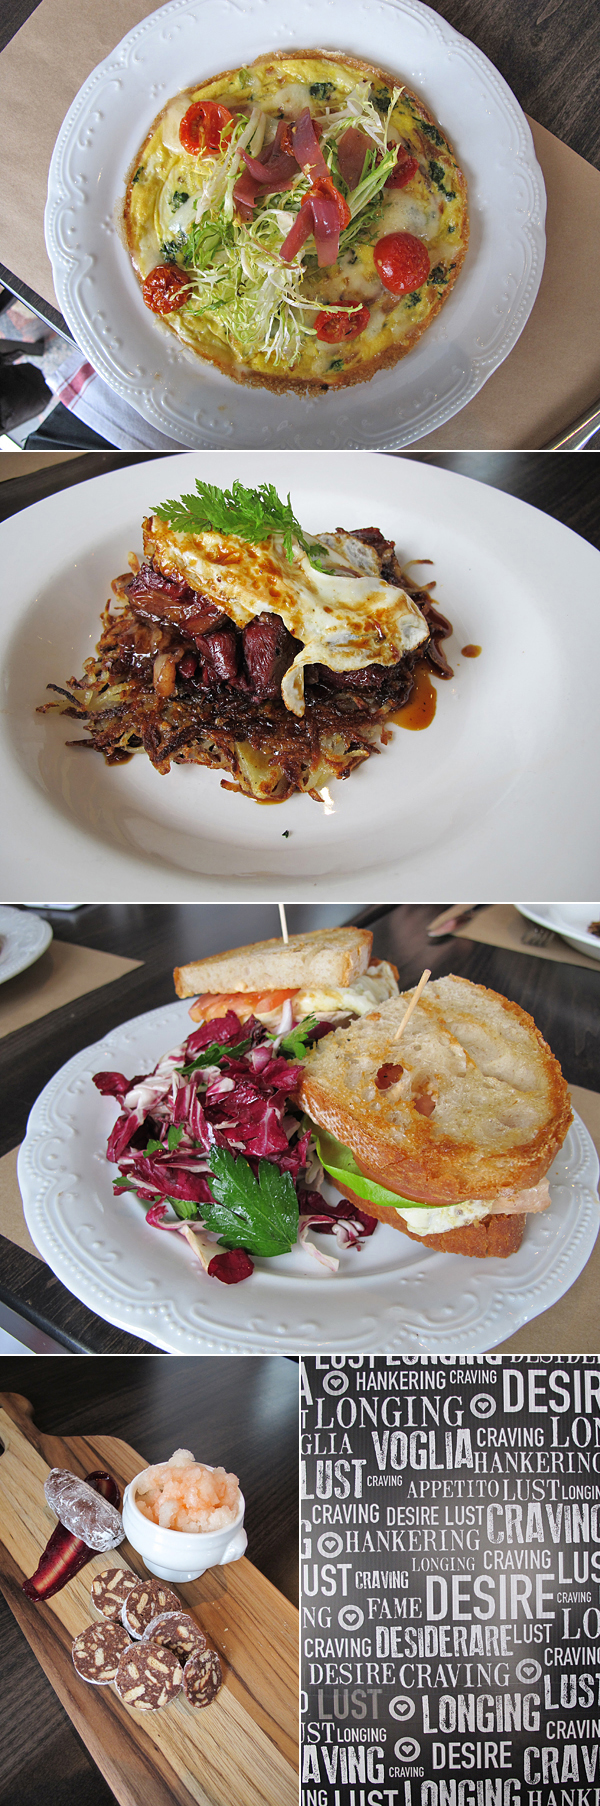 Brunch And Dinner At Brama Restaurant In Montreal S Little Italy Will Travel For Food